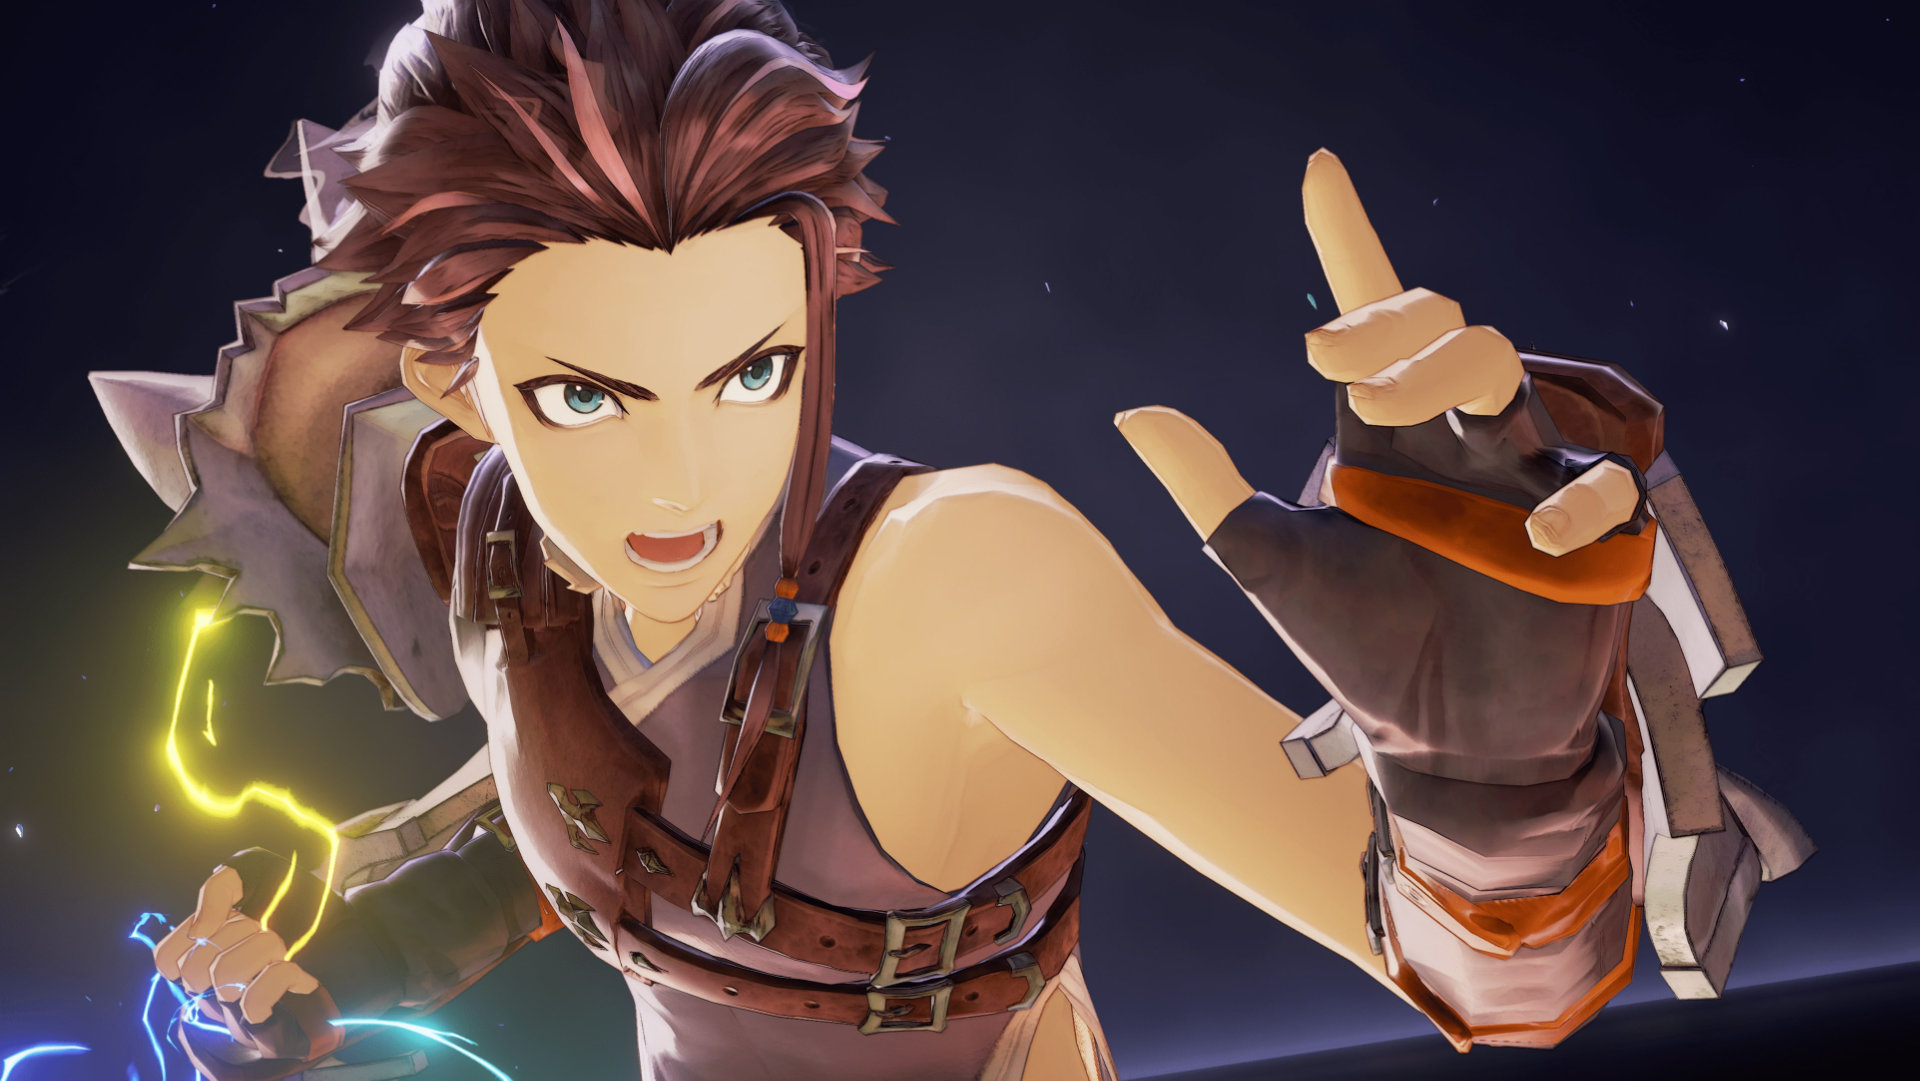 Tales of Arise Screenshot of a thin man wearing a leather harness striking a martial arts pose.